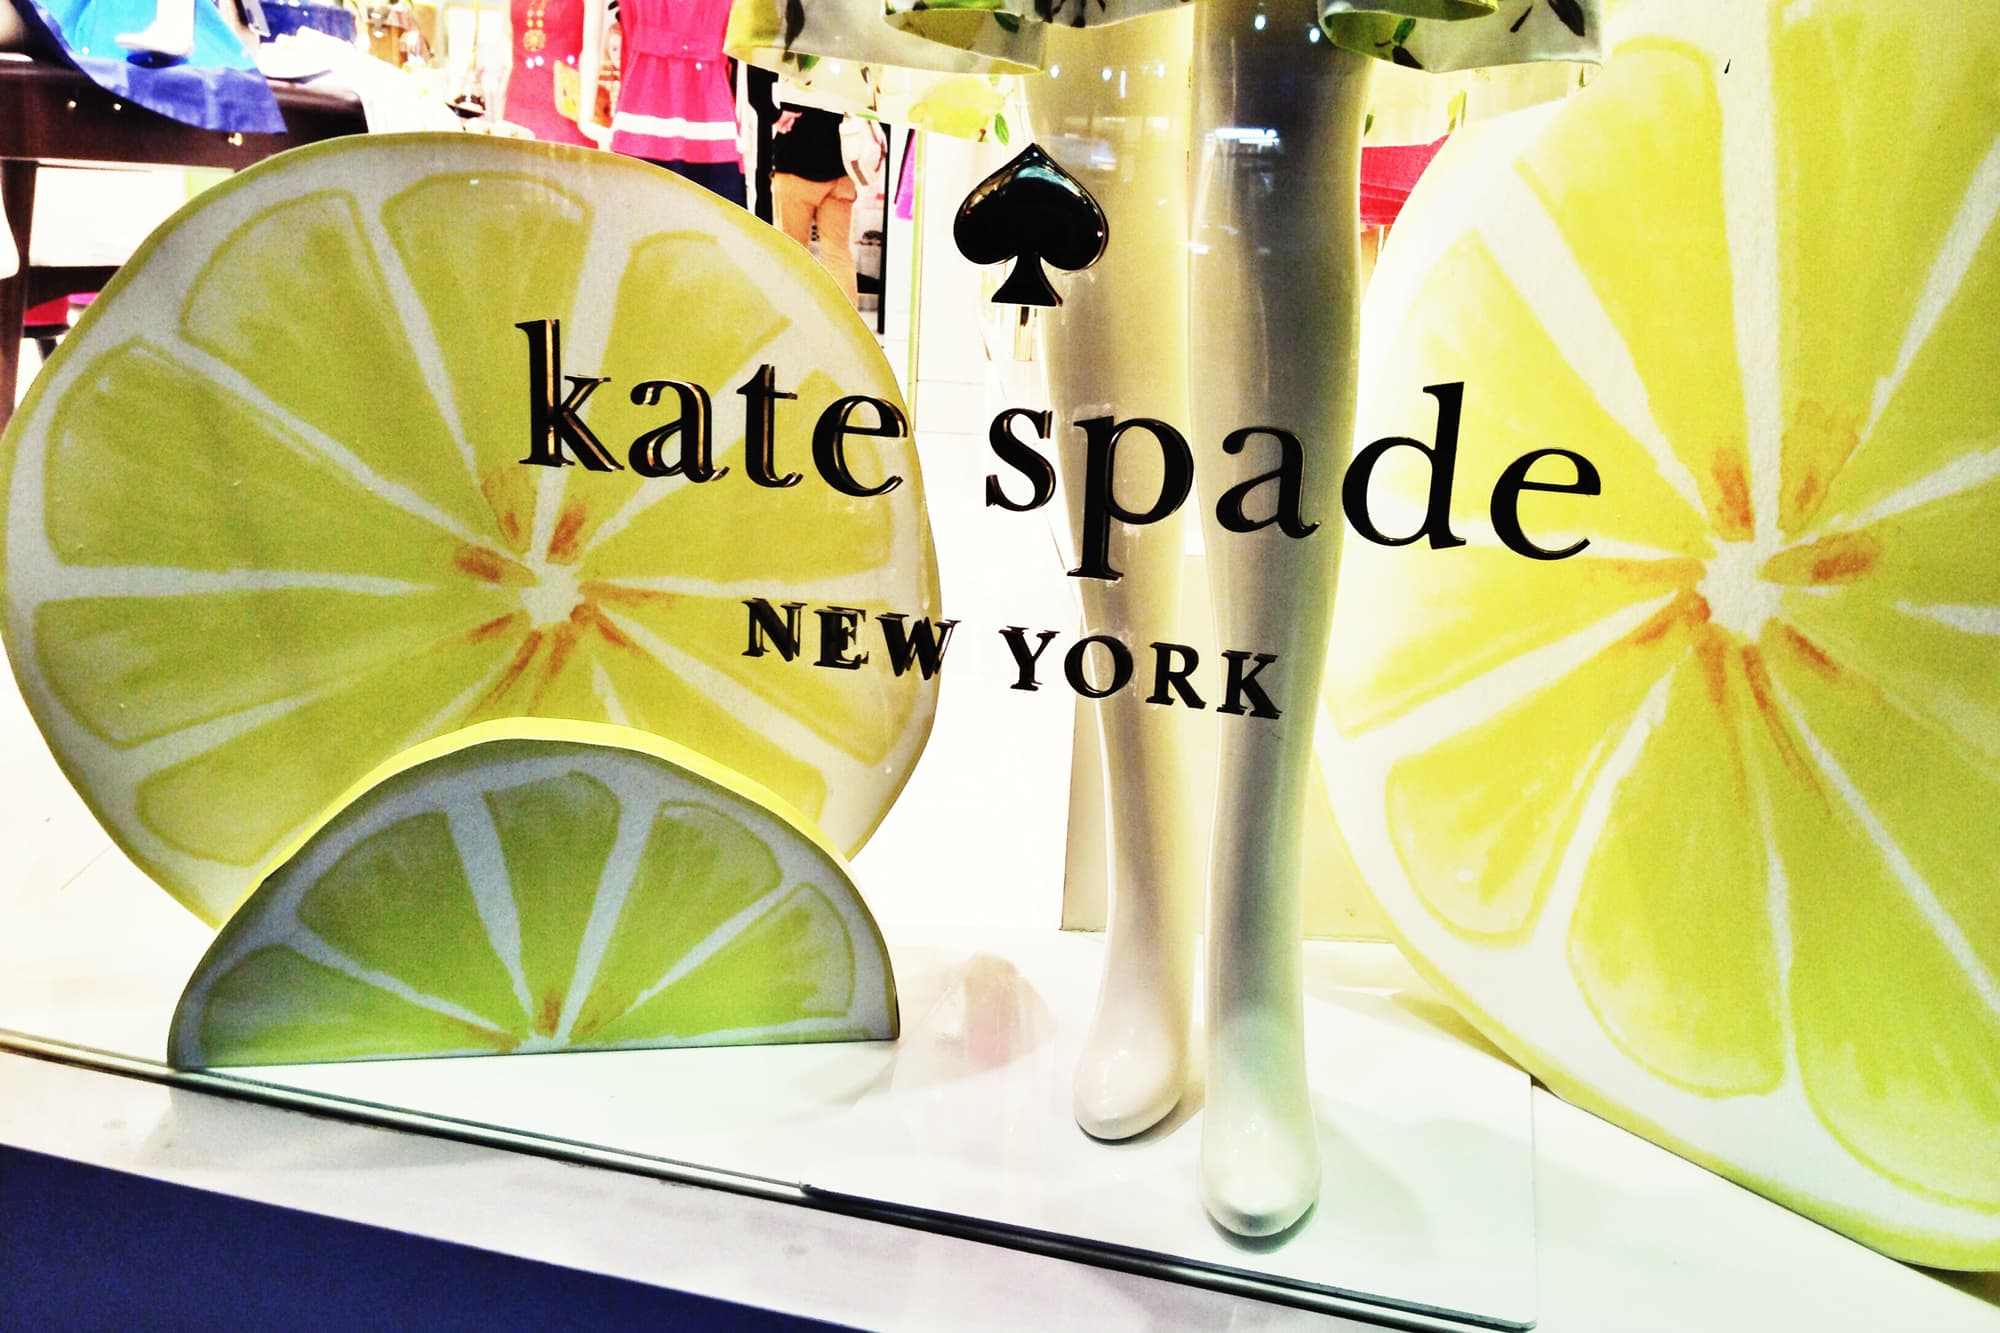 Tapestry CEO says heart-shaped Kate Spade bag sold out after going viral on TikTok - CNBC